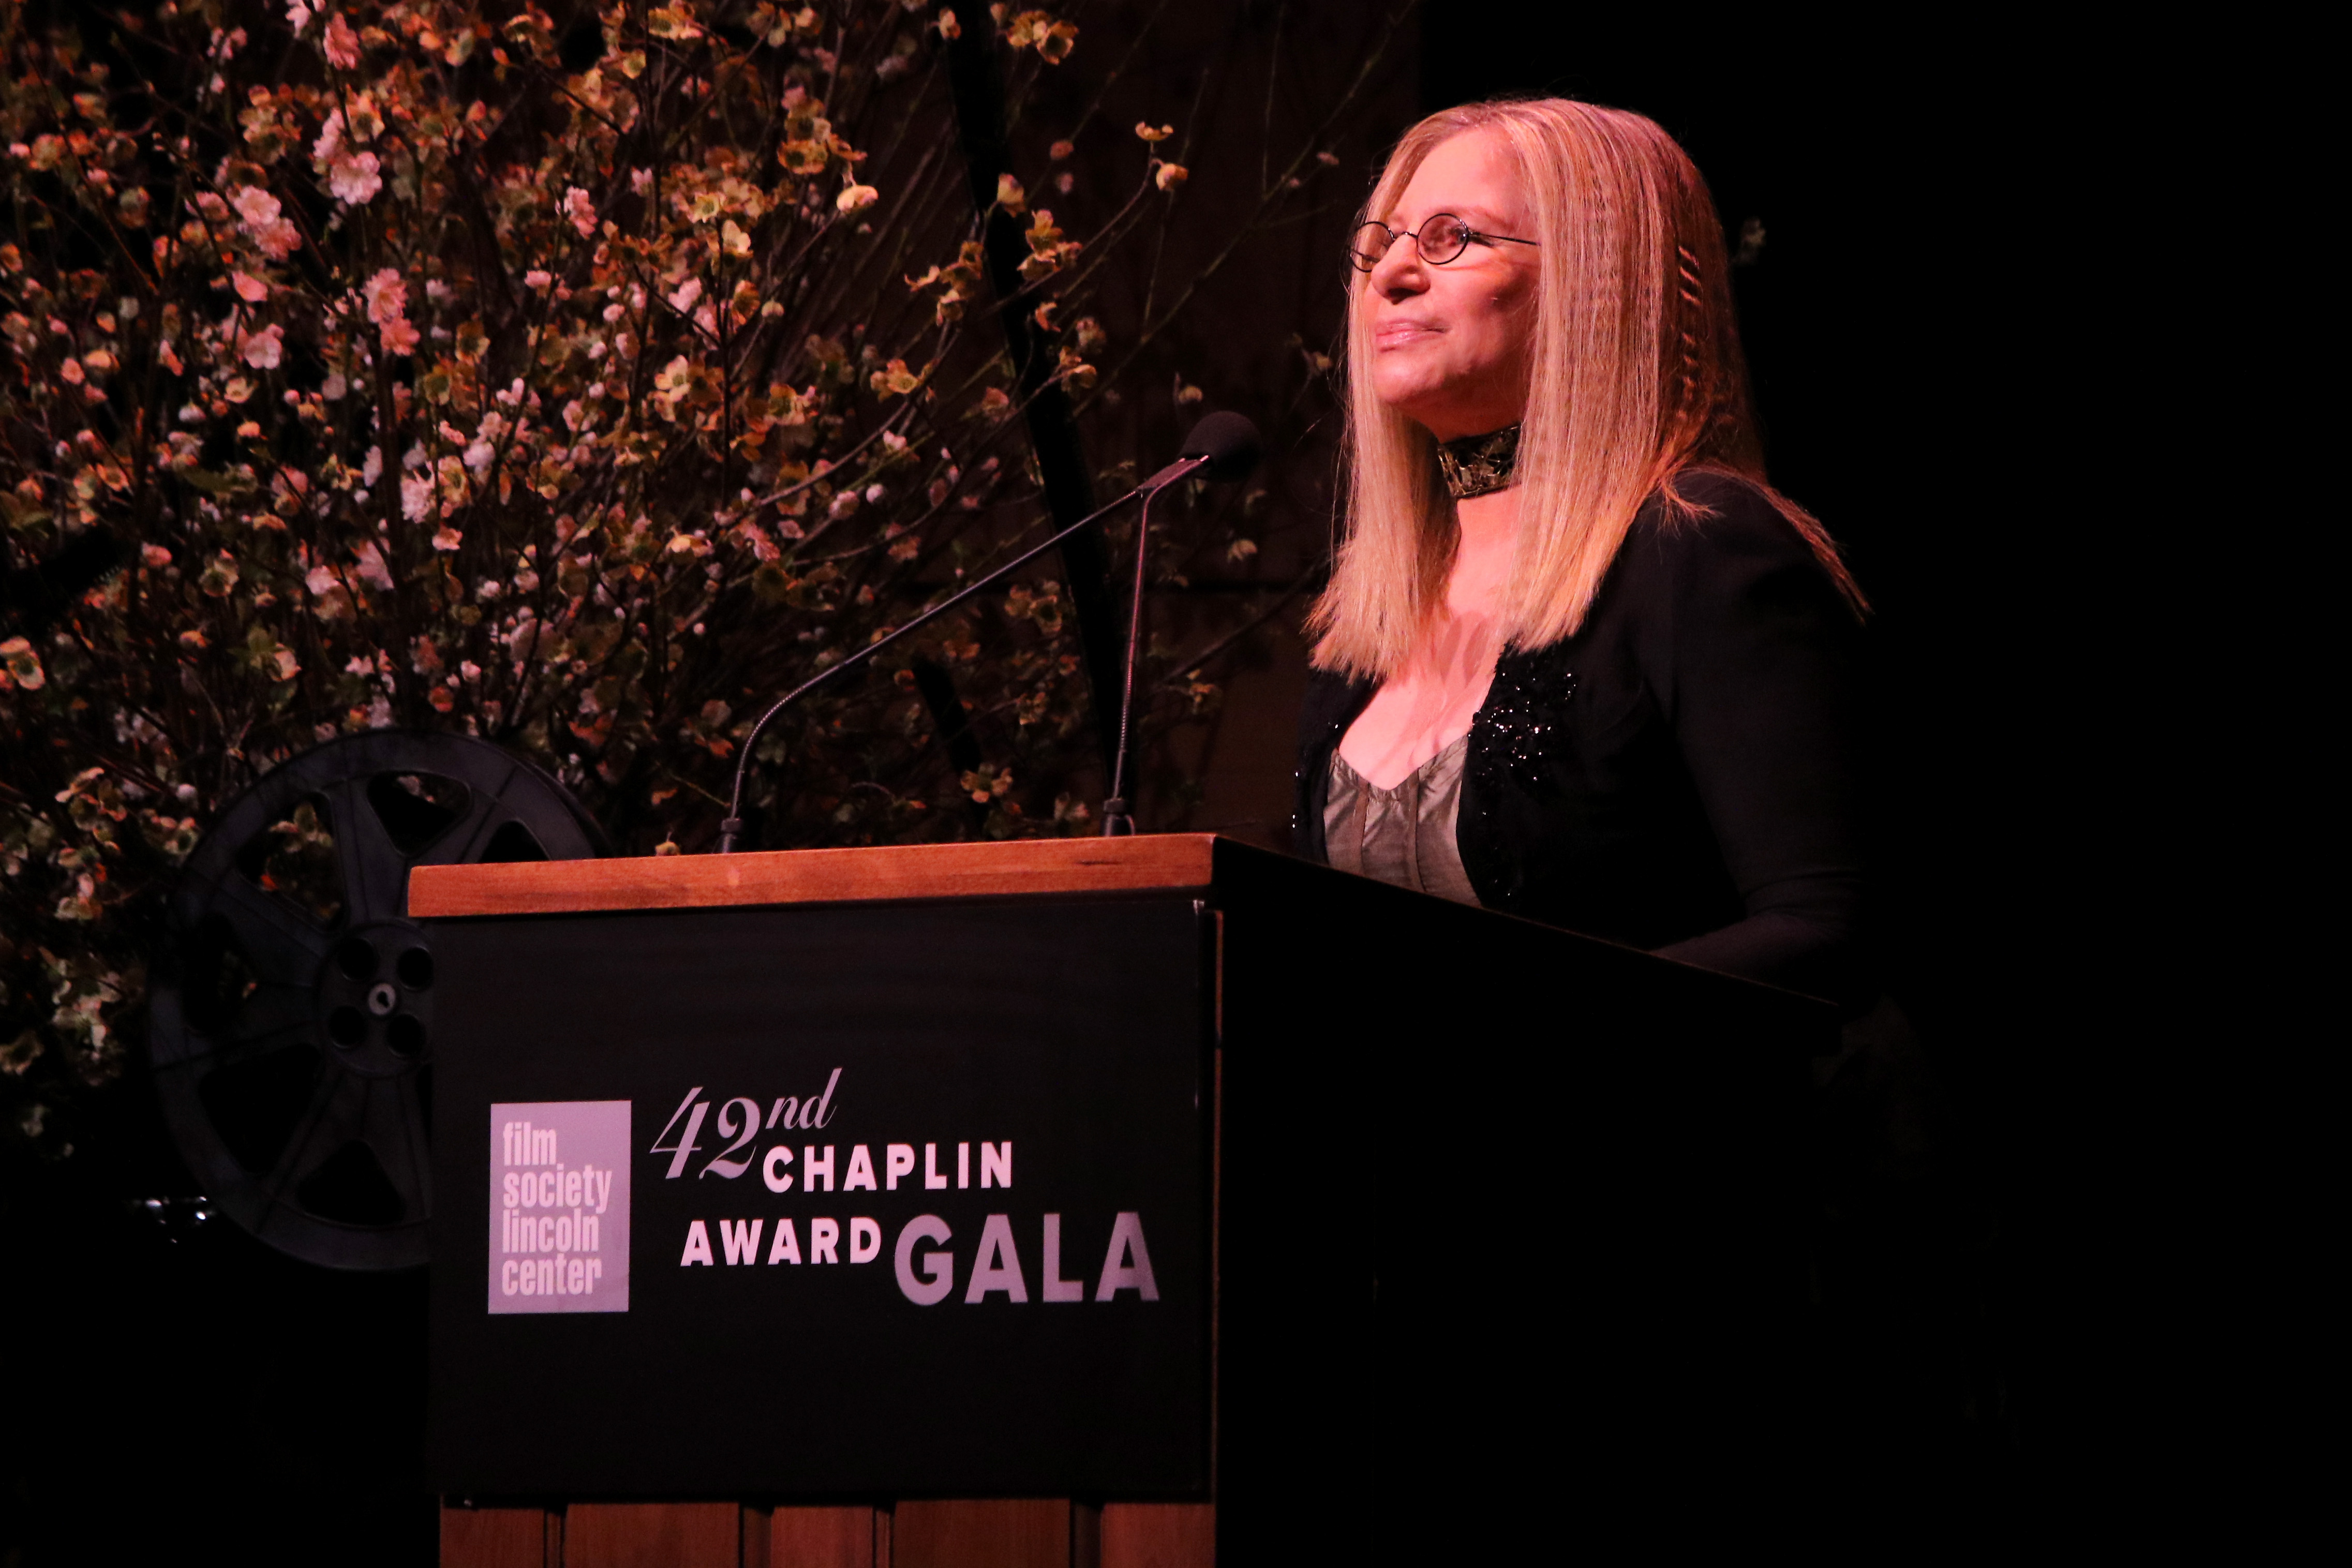 NEW YORK, NY - APRIL 27:  (EXCLUSIVE COVERAGE) Barbra Streisand speaks onstage at the 42nd Chaplin Award Gala at Alice Tully Hall, Lincoln Center on April 27, 2015 in New York City.  (Photo by Jim Spellman/WireImage)